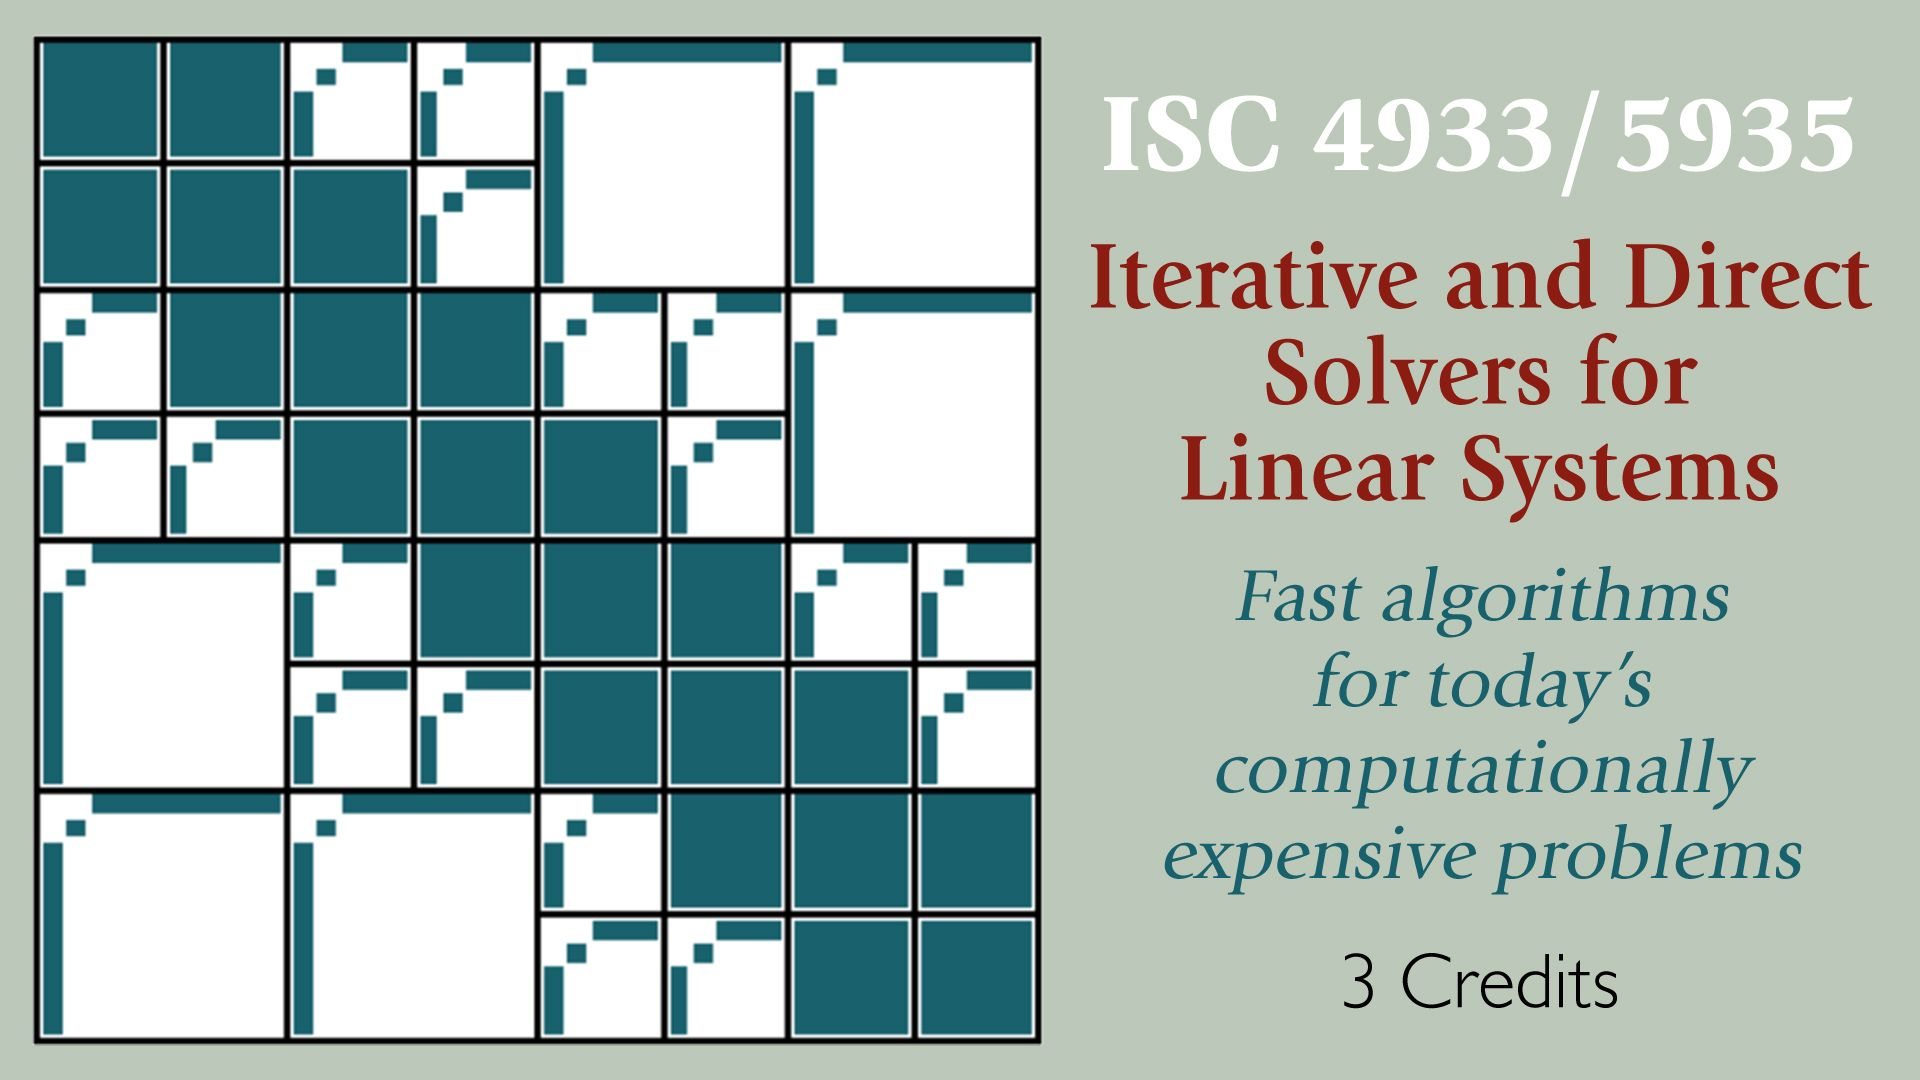 ISC5935-4933-web